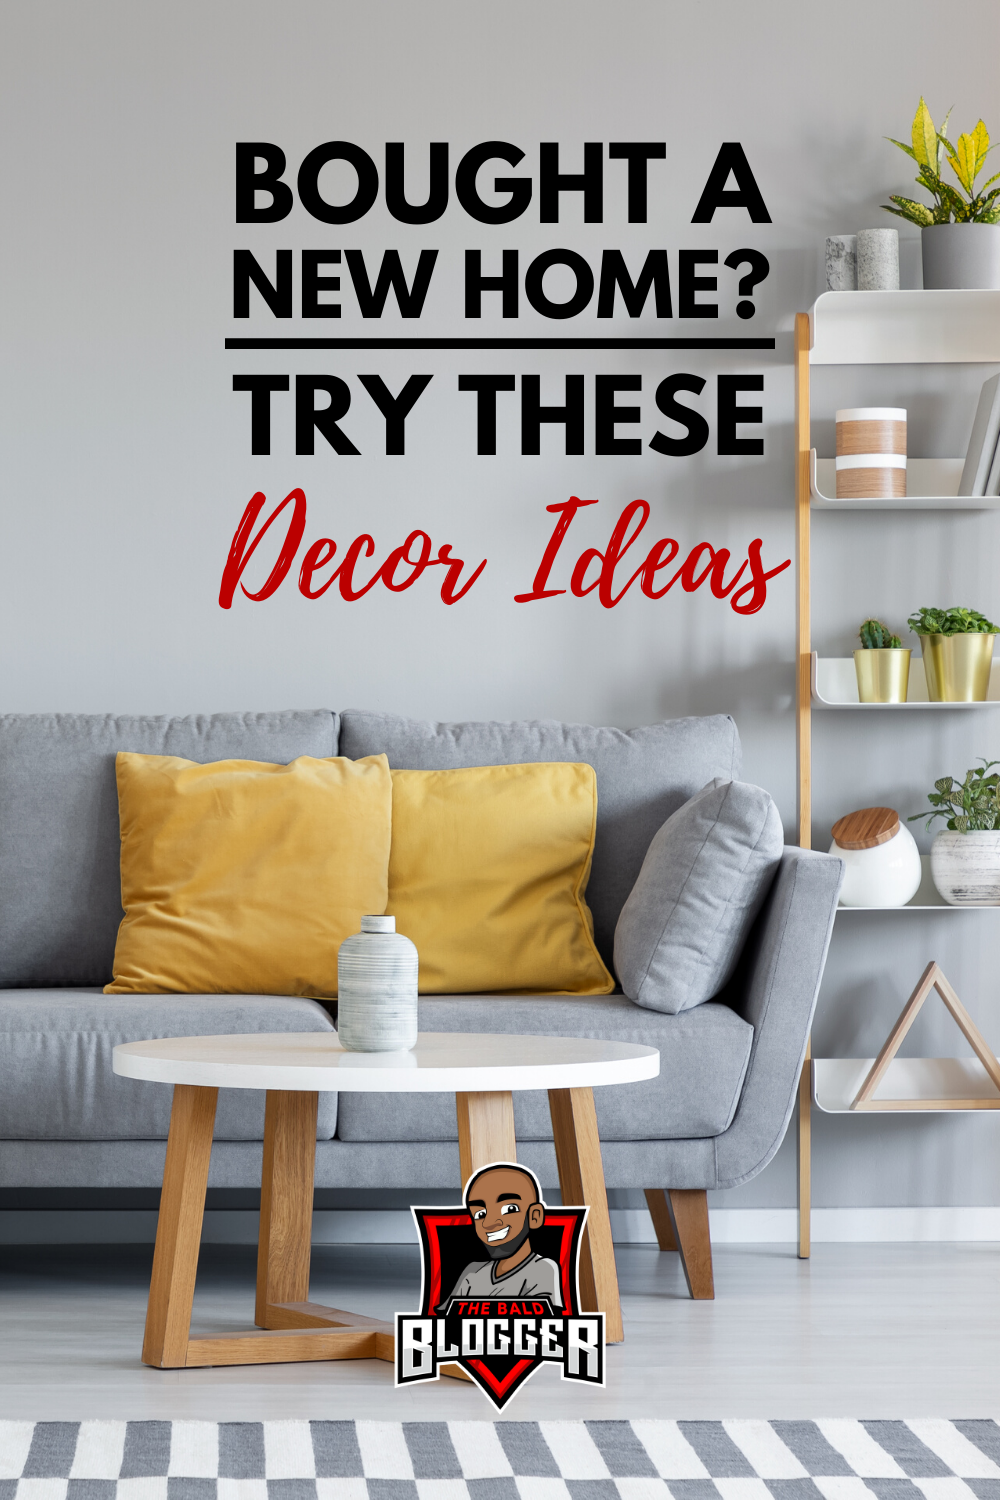 Try these new home decor trends! If you've bought a new home, you'll love these 8 new home decor trends  #newhome #newhomedecor #newhomedecortrends